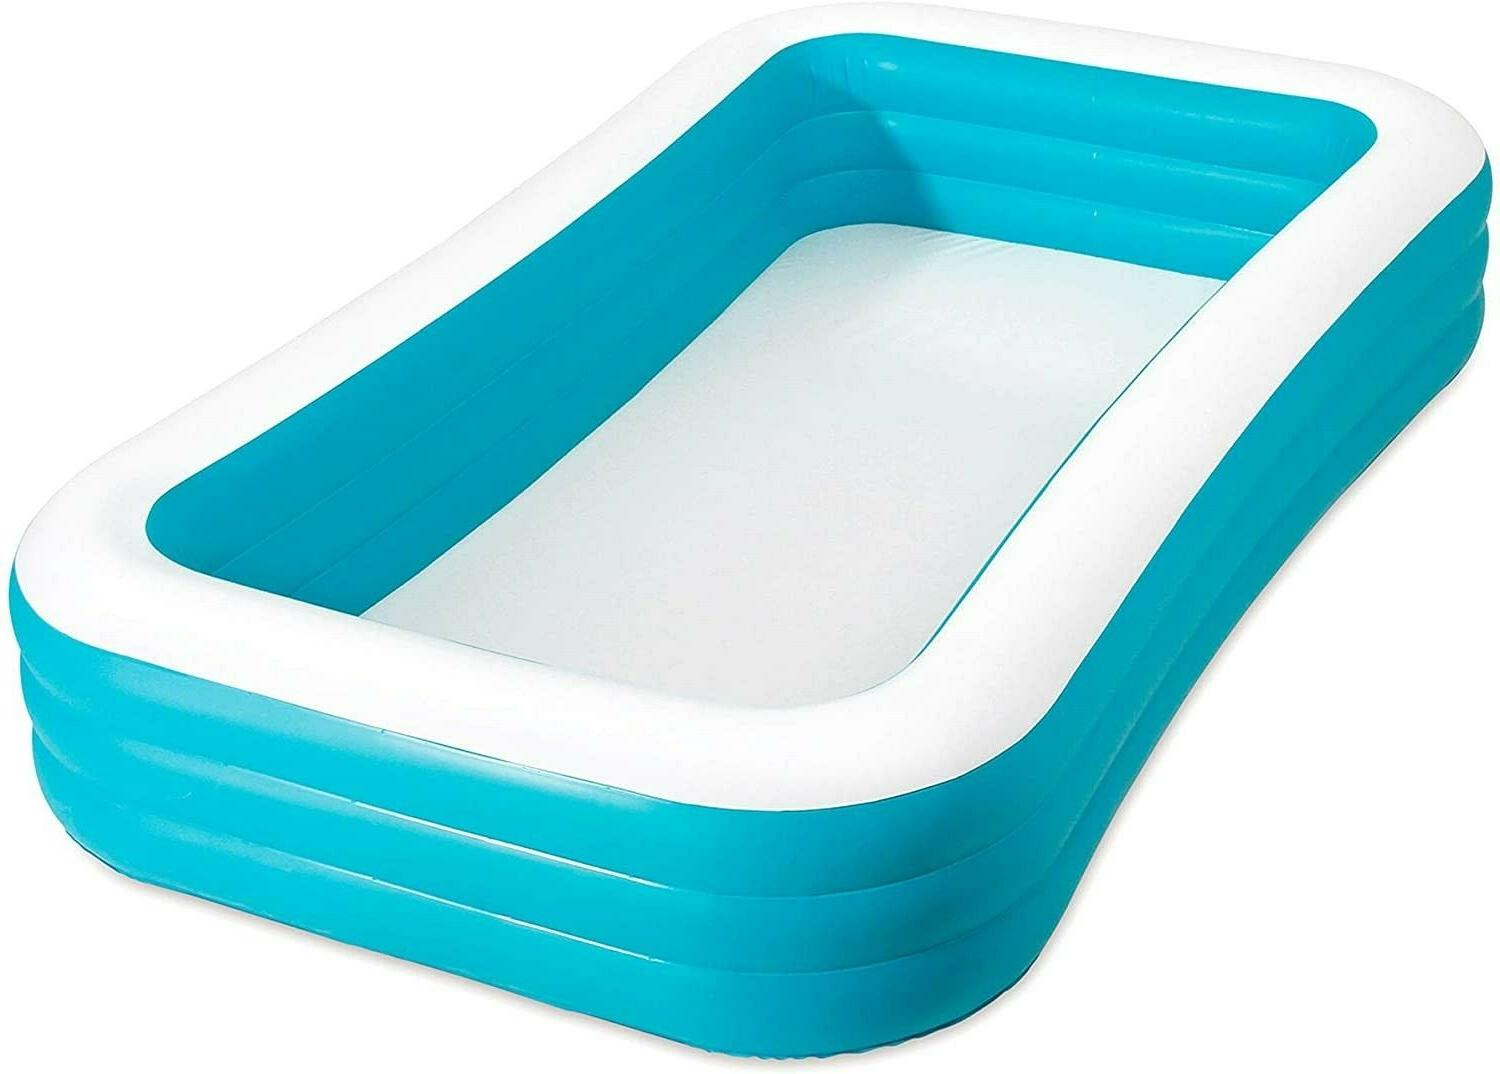 "Play Day Foot Family Pool Outdoor 72"" 22"""